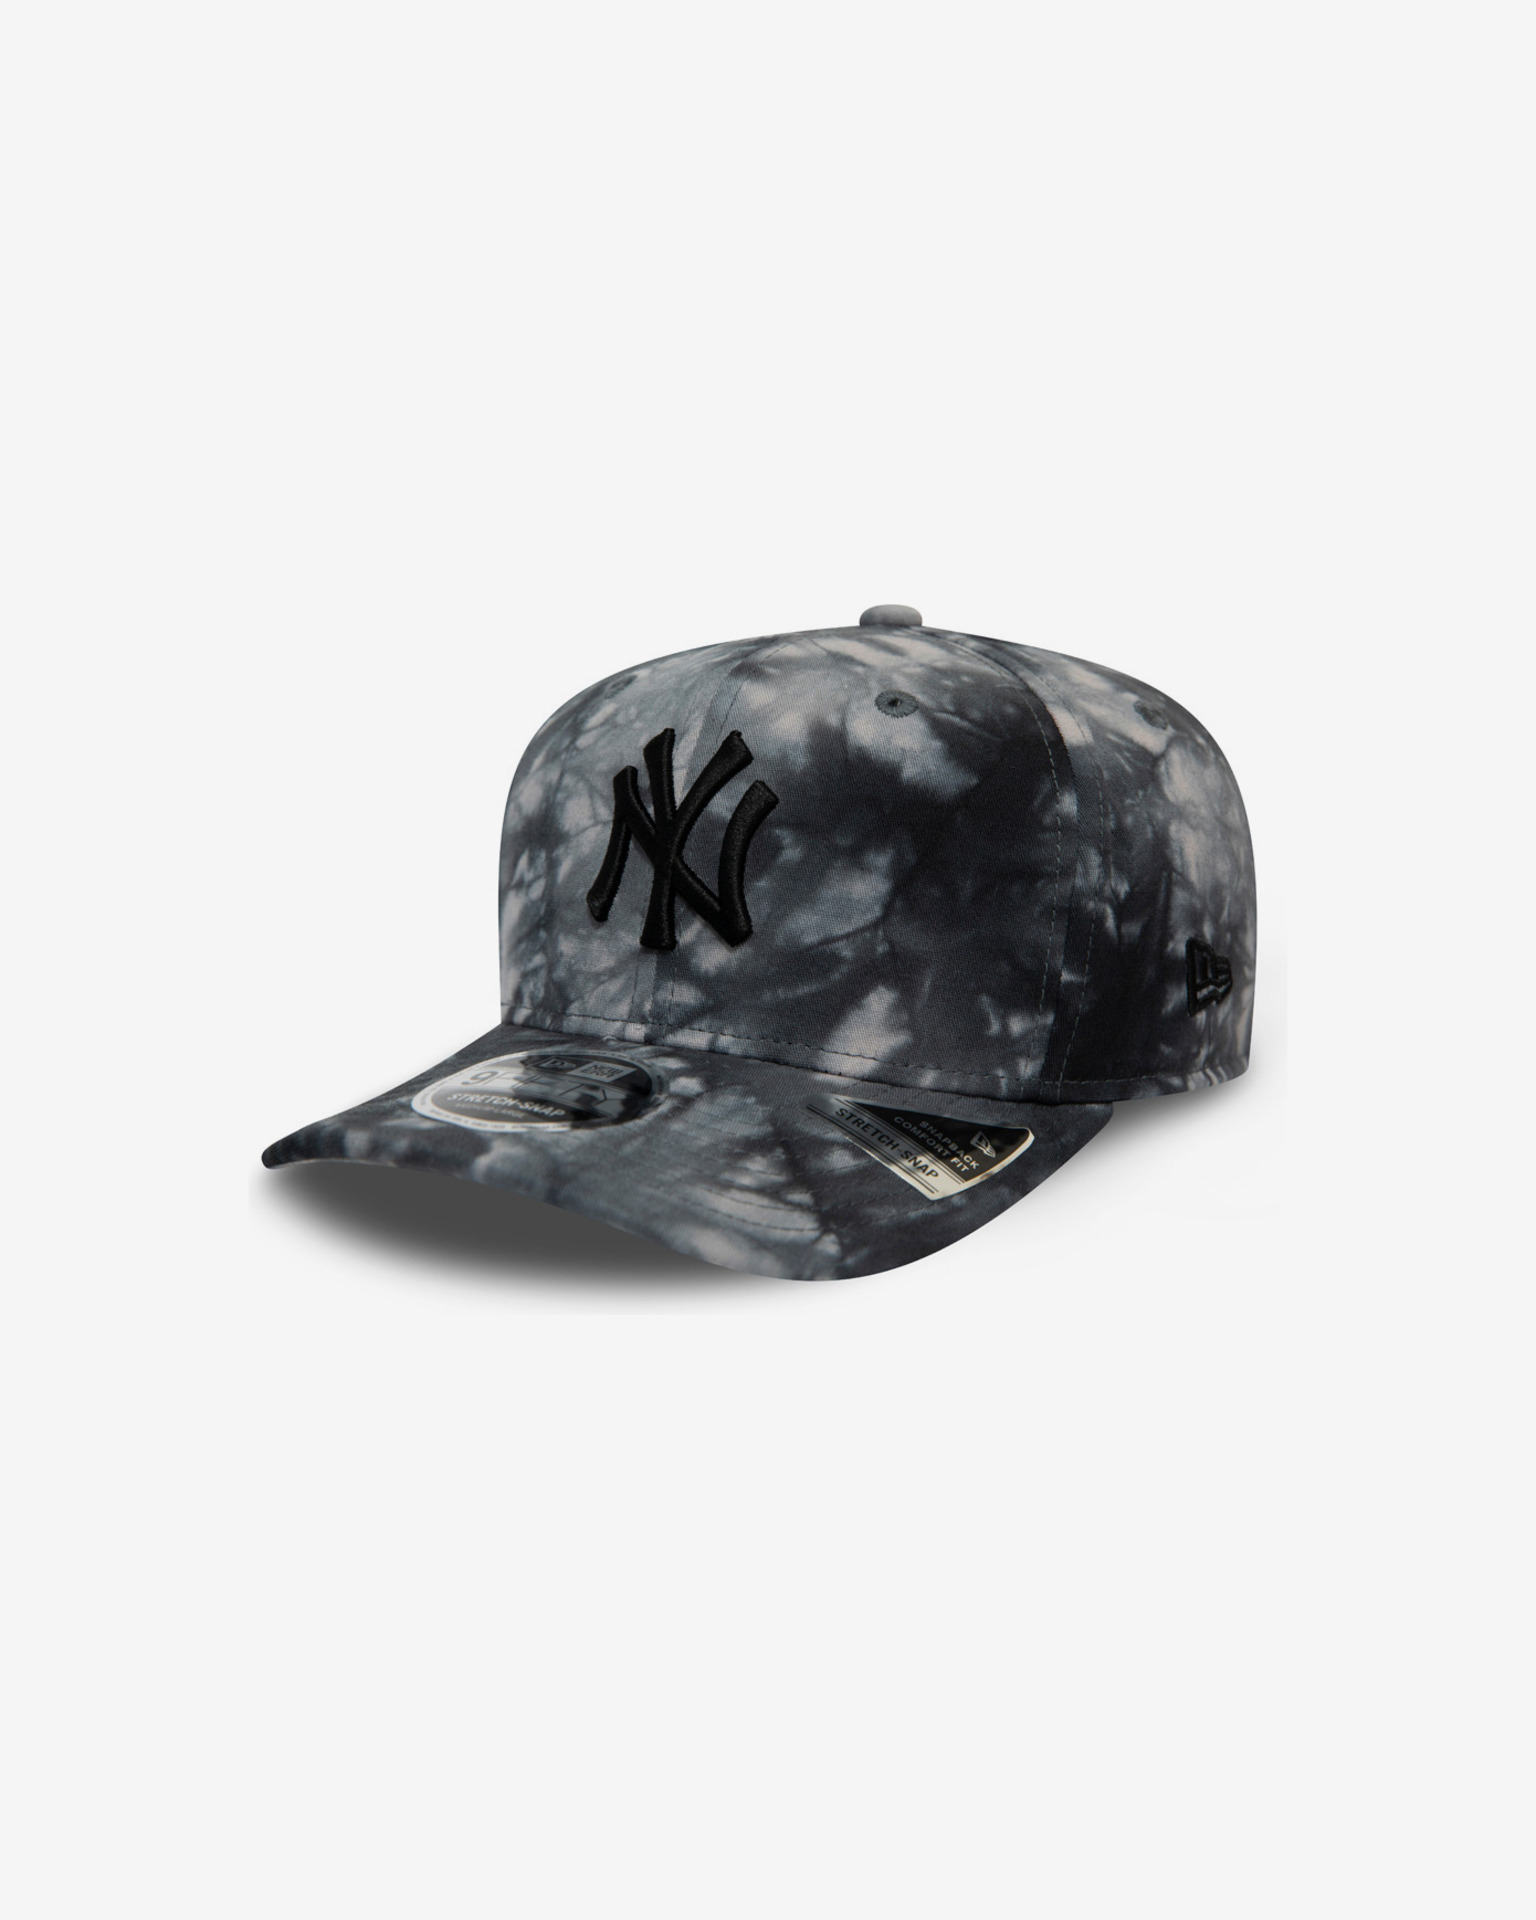 New York Yankees Team Tie Dye 9Fifty Šiltovka New Era